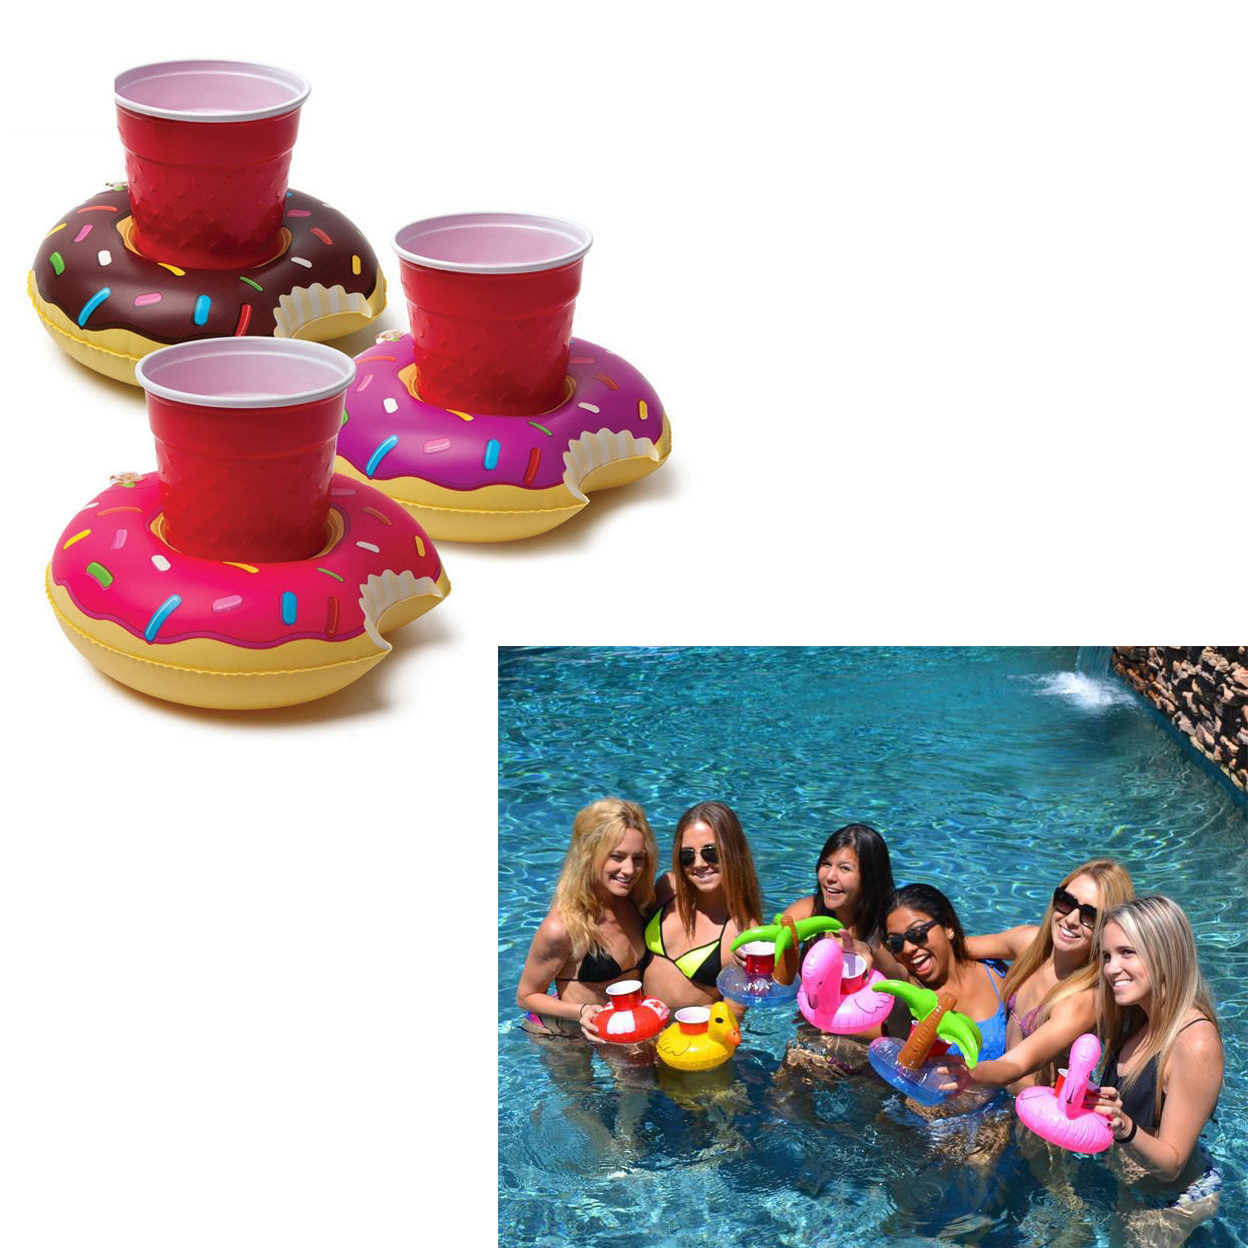 Fun Floaties Drink Holders For Your Pool Pack Of 3 596f436339f7e302541d3c8a